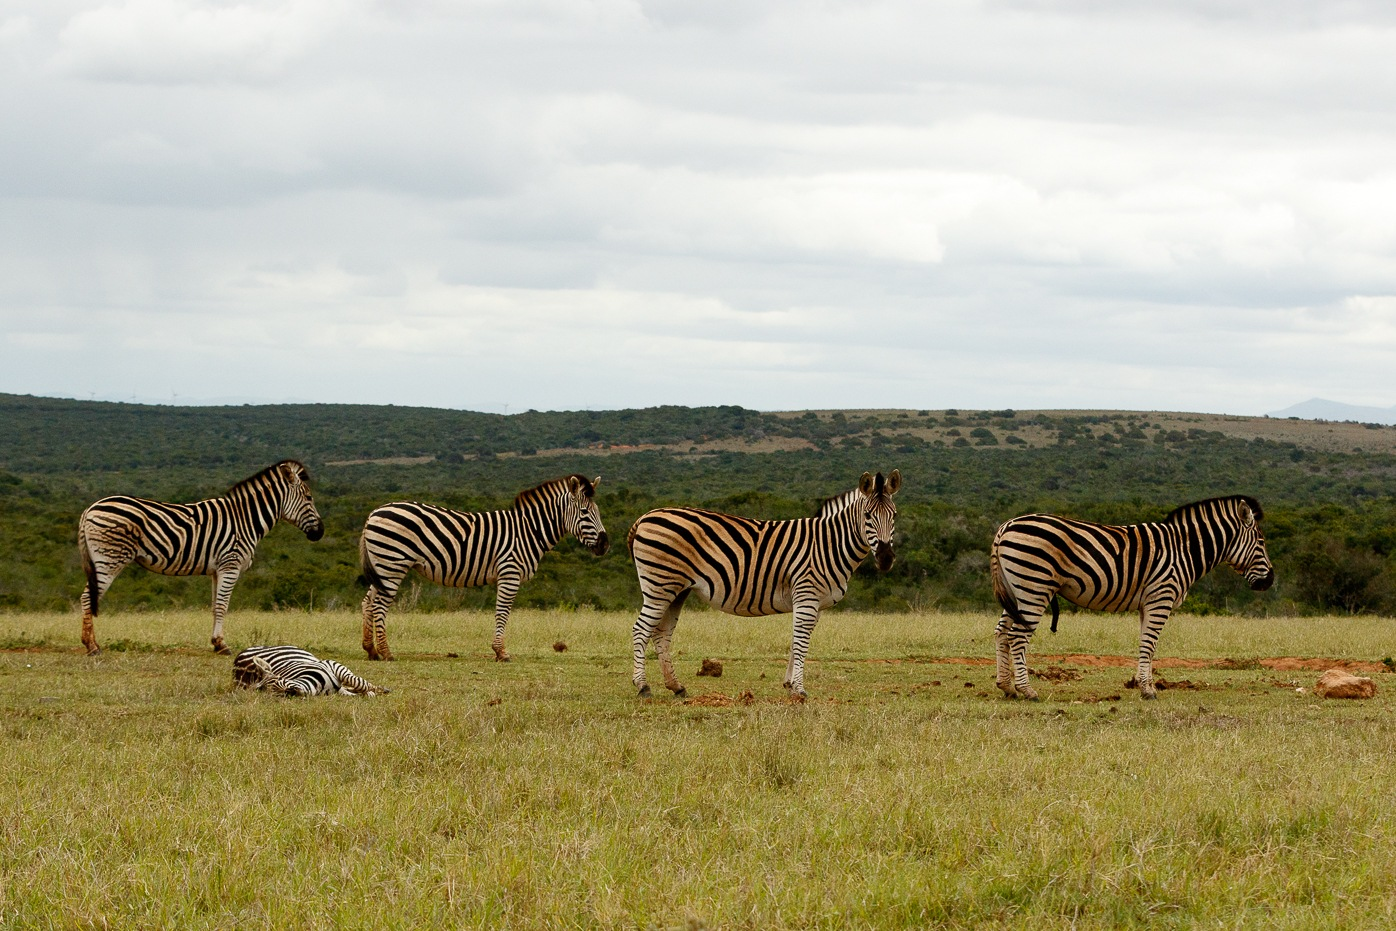 Zebras standing and lying down, waiting for some water by Mark de Scande